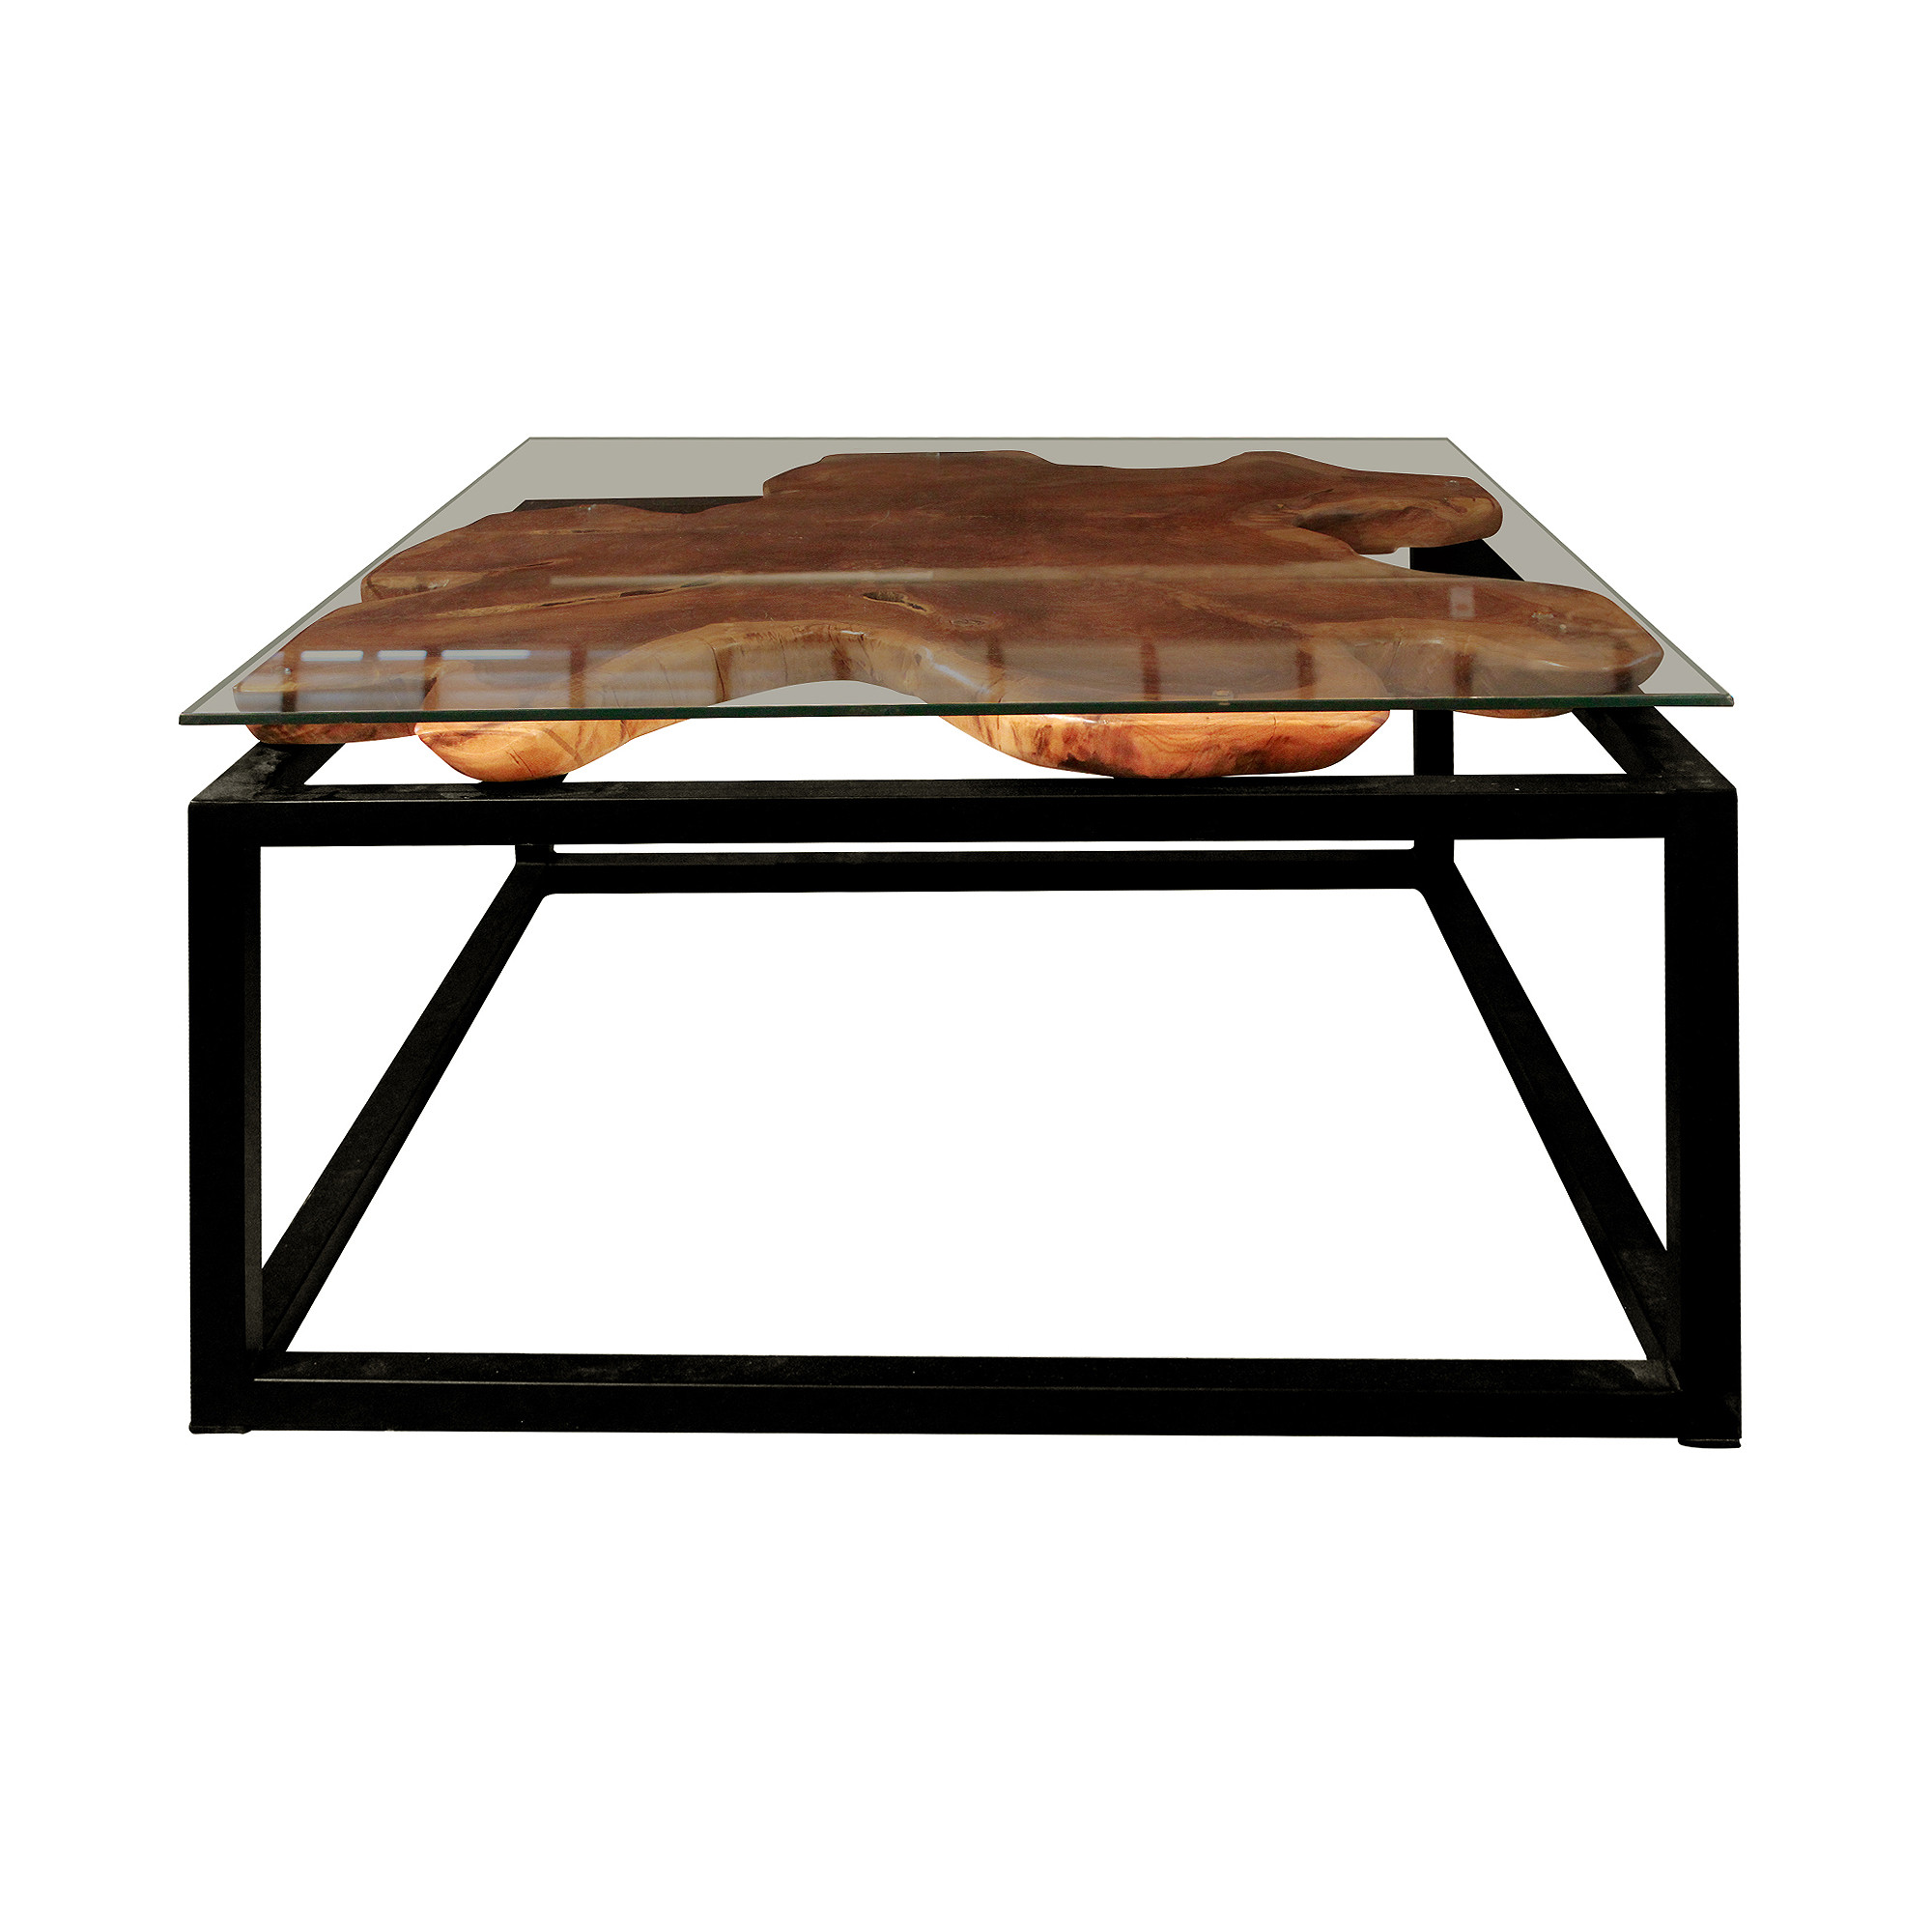 b5c523672cd5d Square Coffee Table - Teak with Metal 80. Display Gallery Item 1  Display  Gallery Item 2